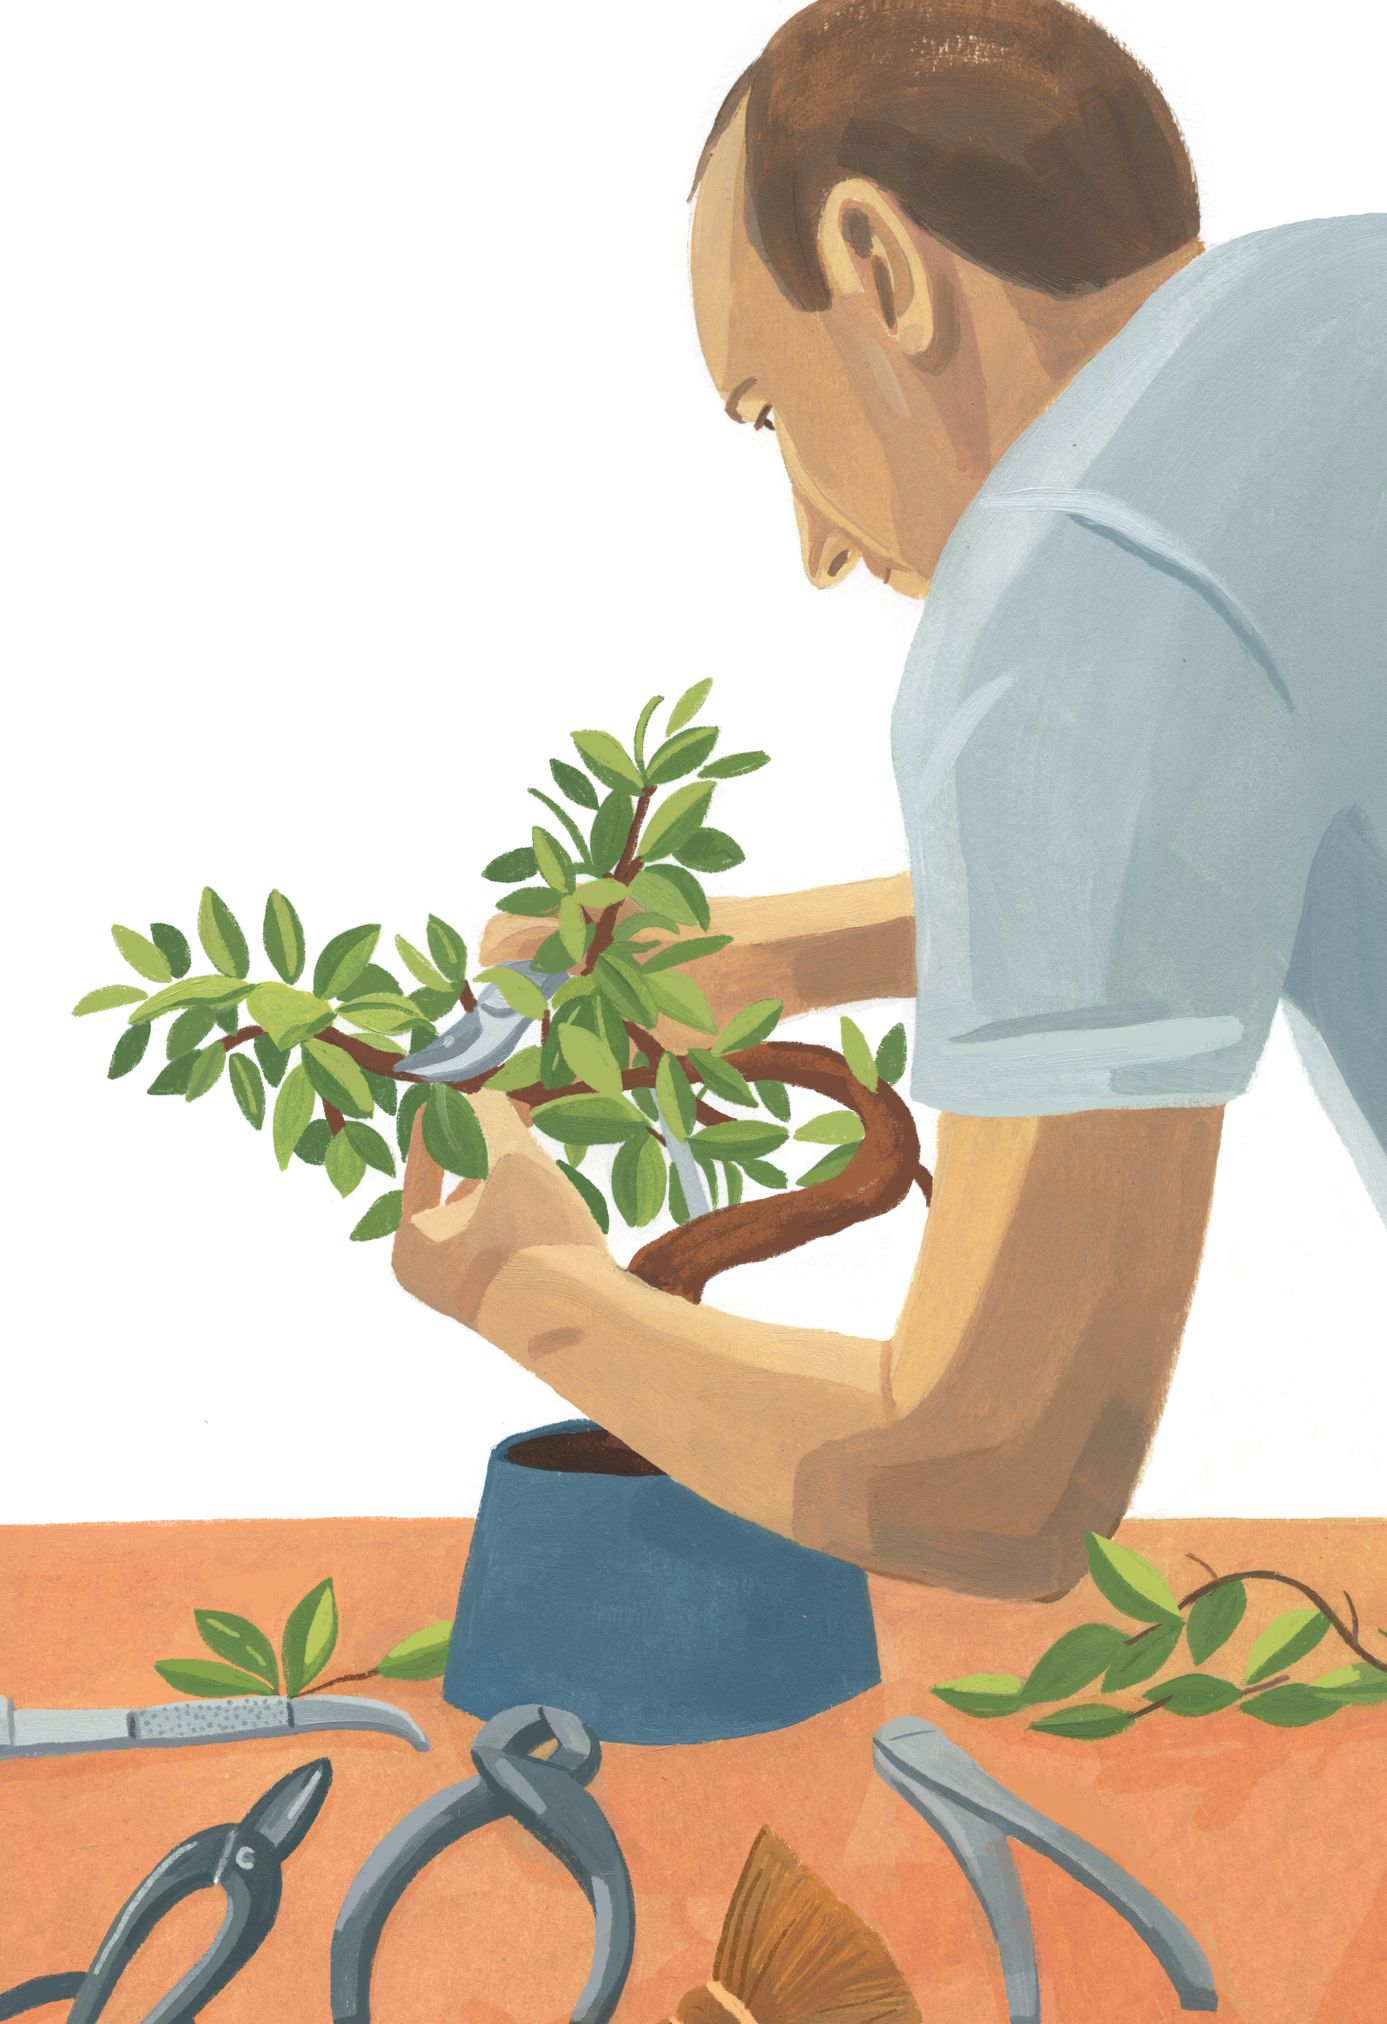 Garance-Illustration-Grace-Helmer-Plantfulness-Bonsai